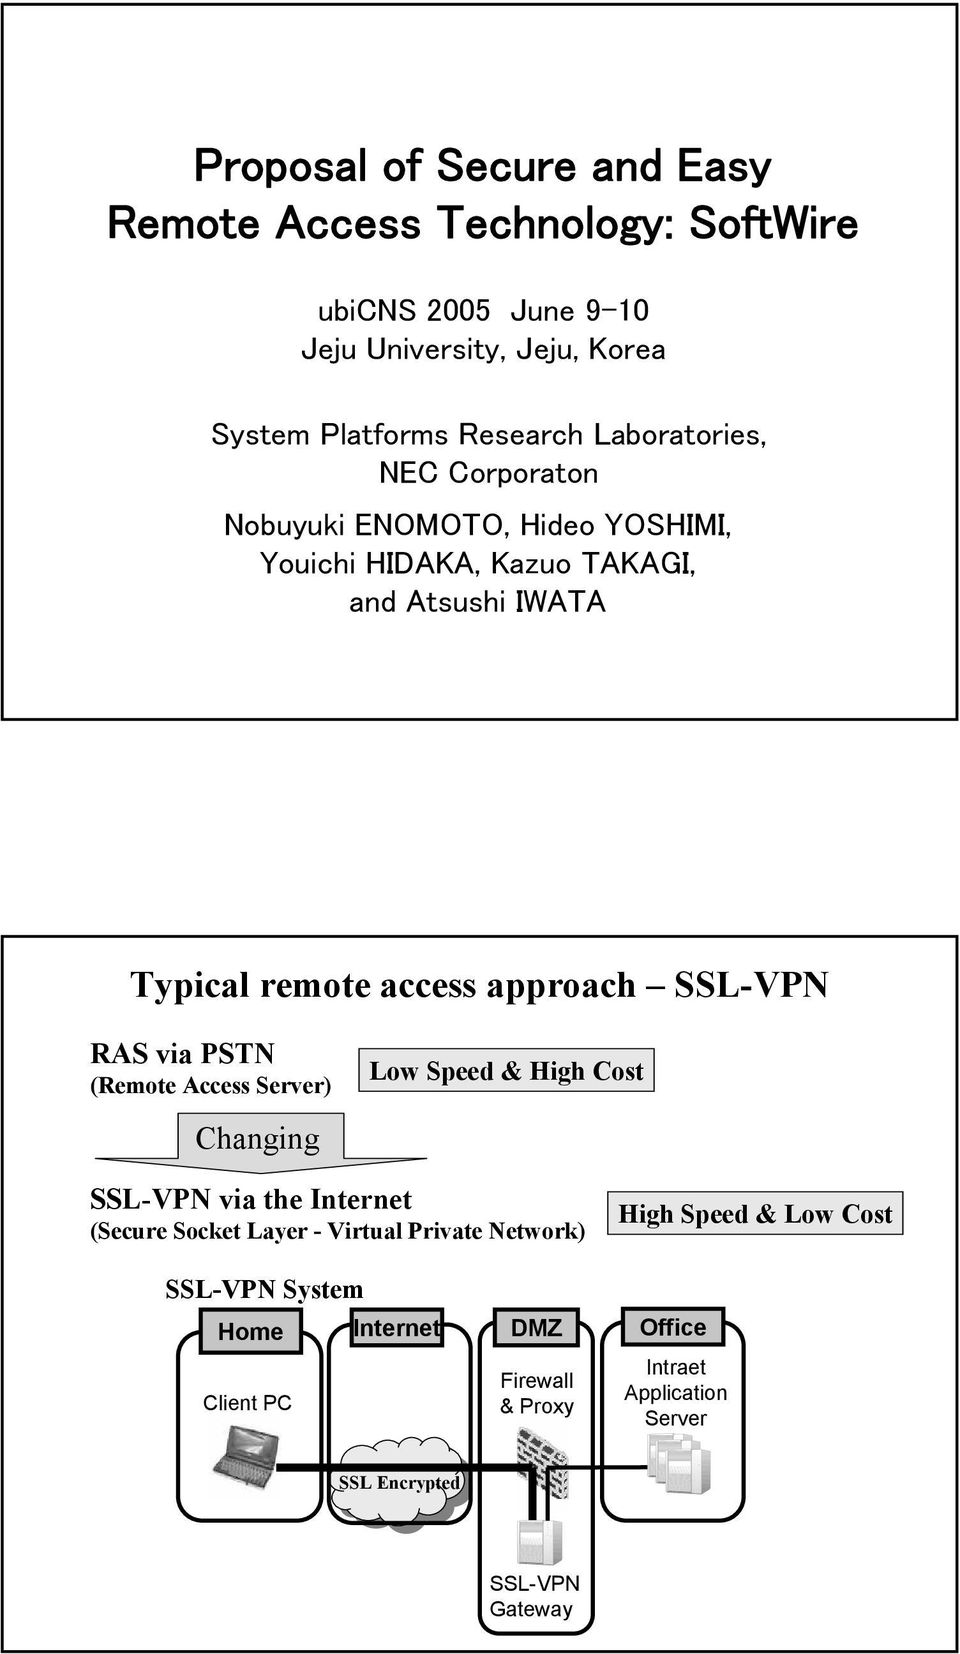 Proposal of Secure and Easy Remote Access Technology